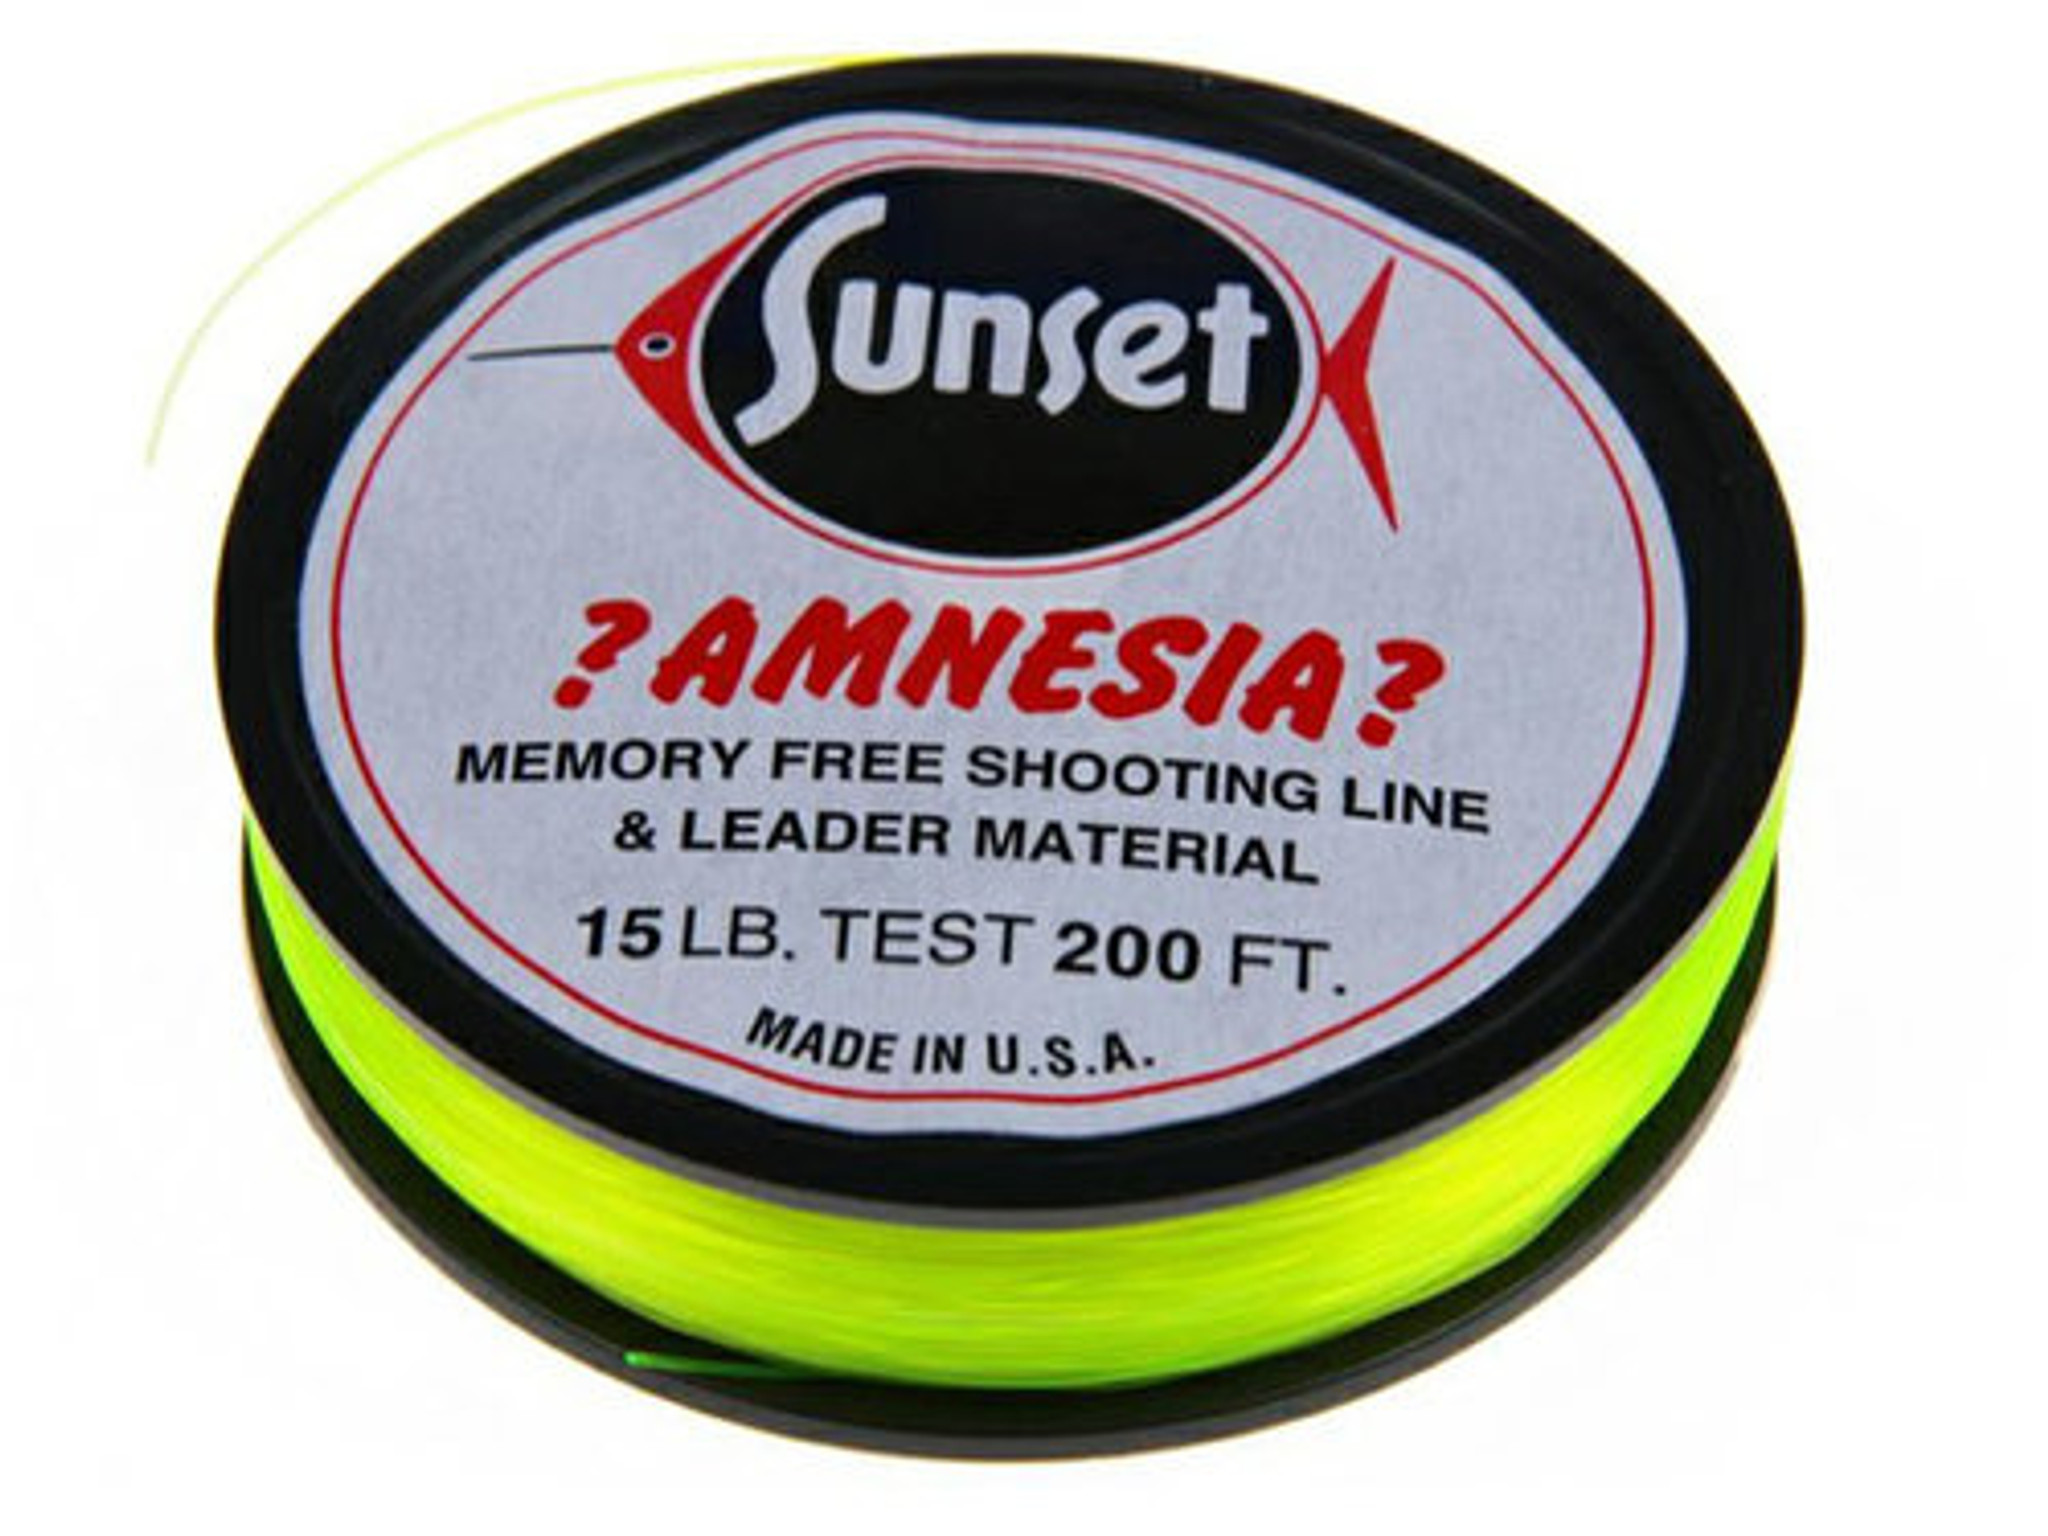 Red,Sunset ?Amnesia? Memory Free Monofilament Fishing Line